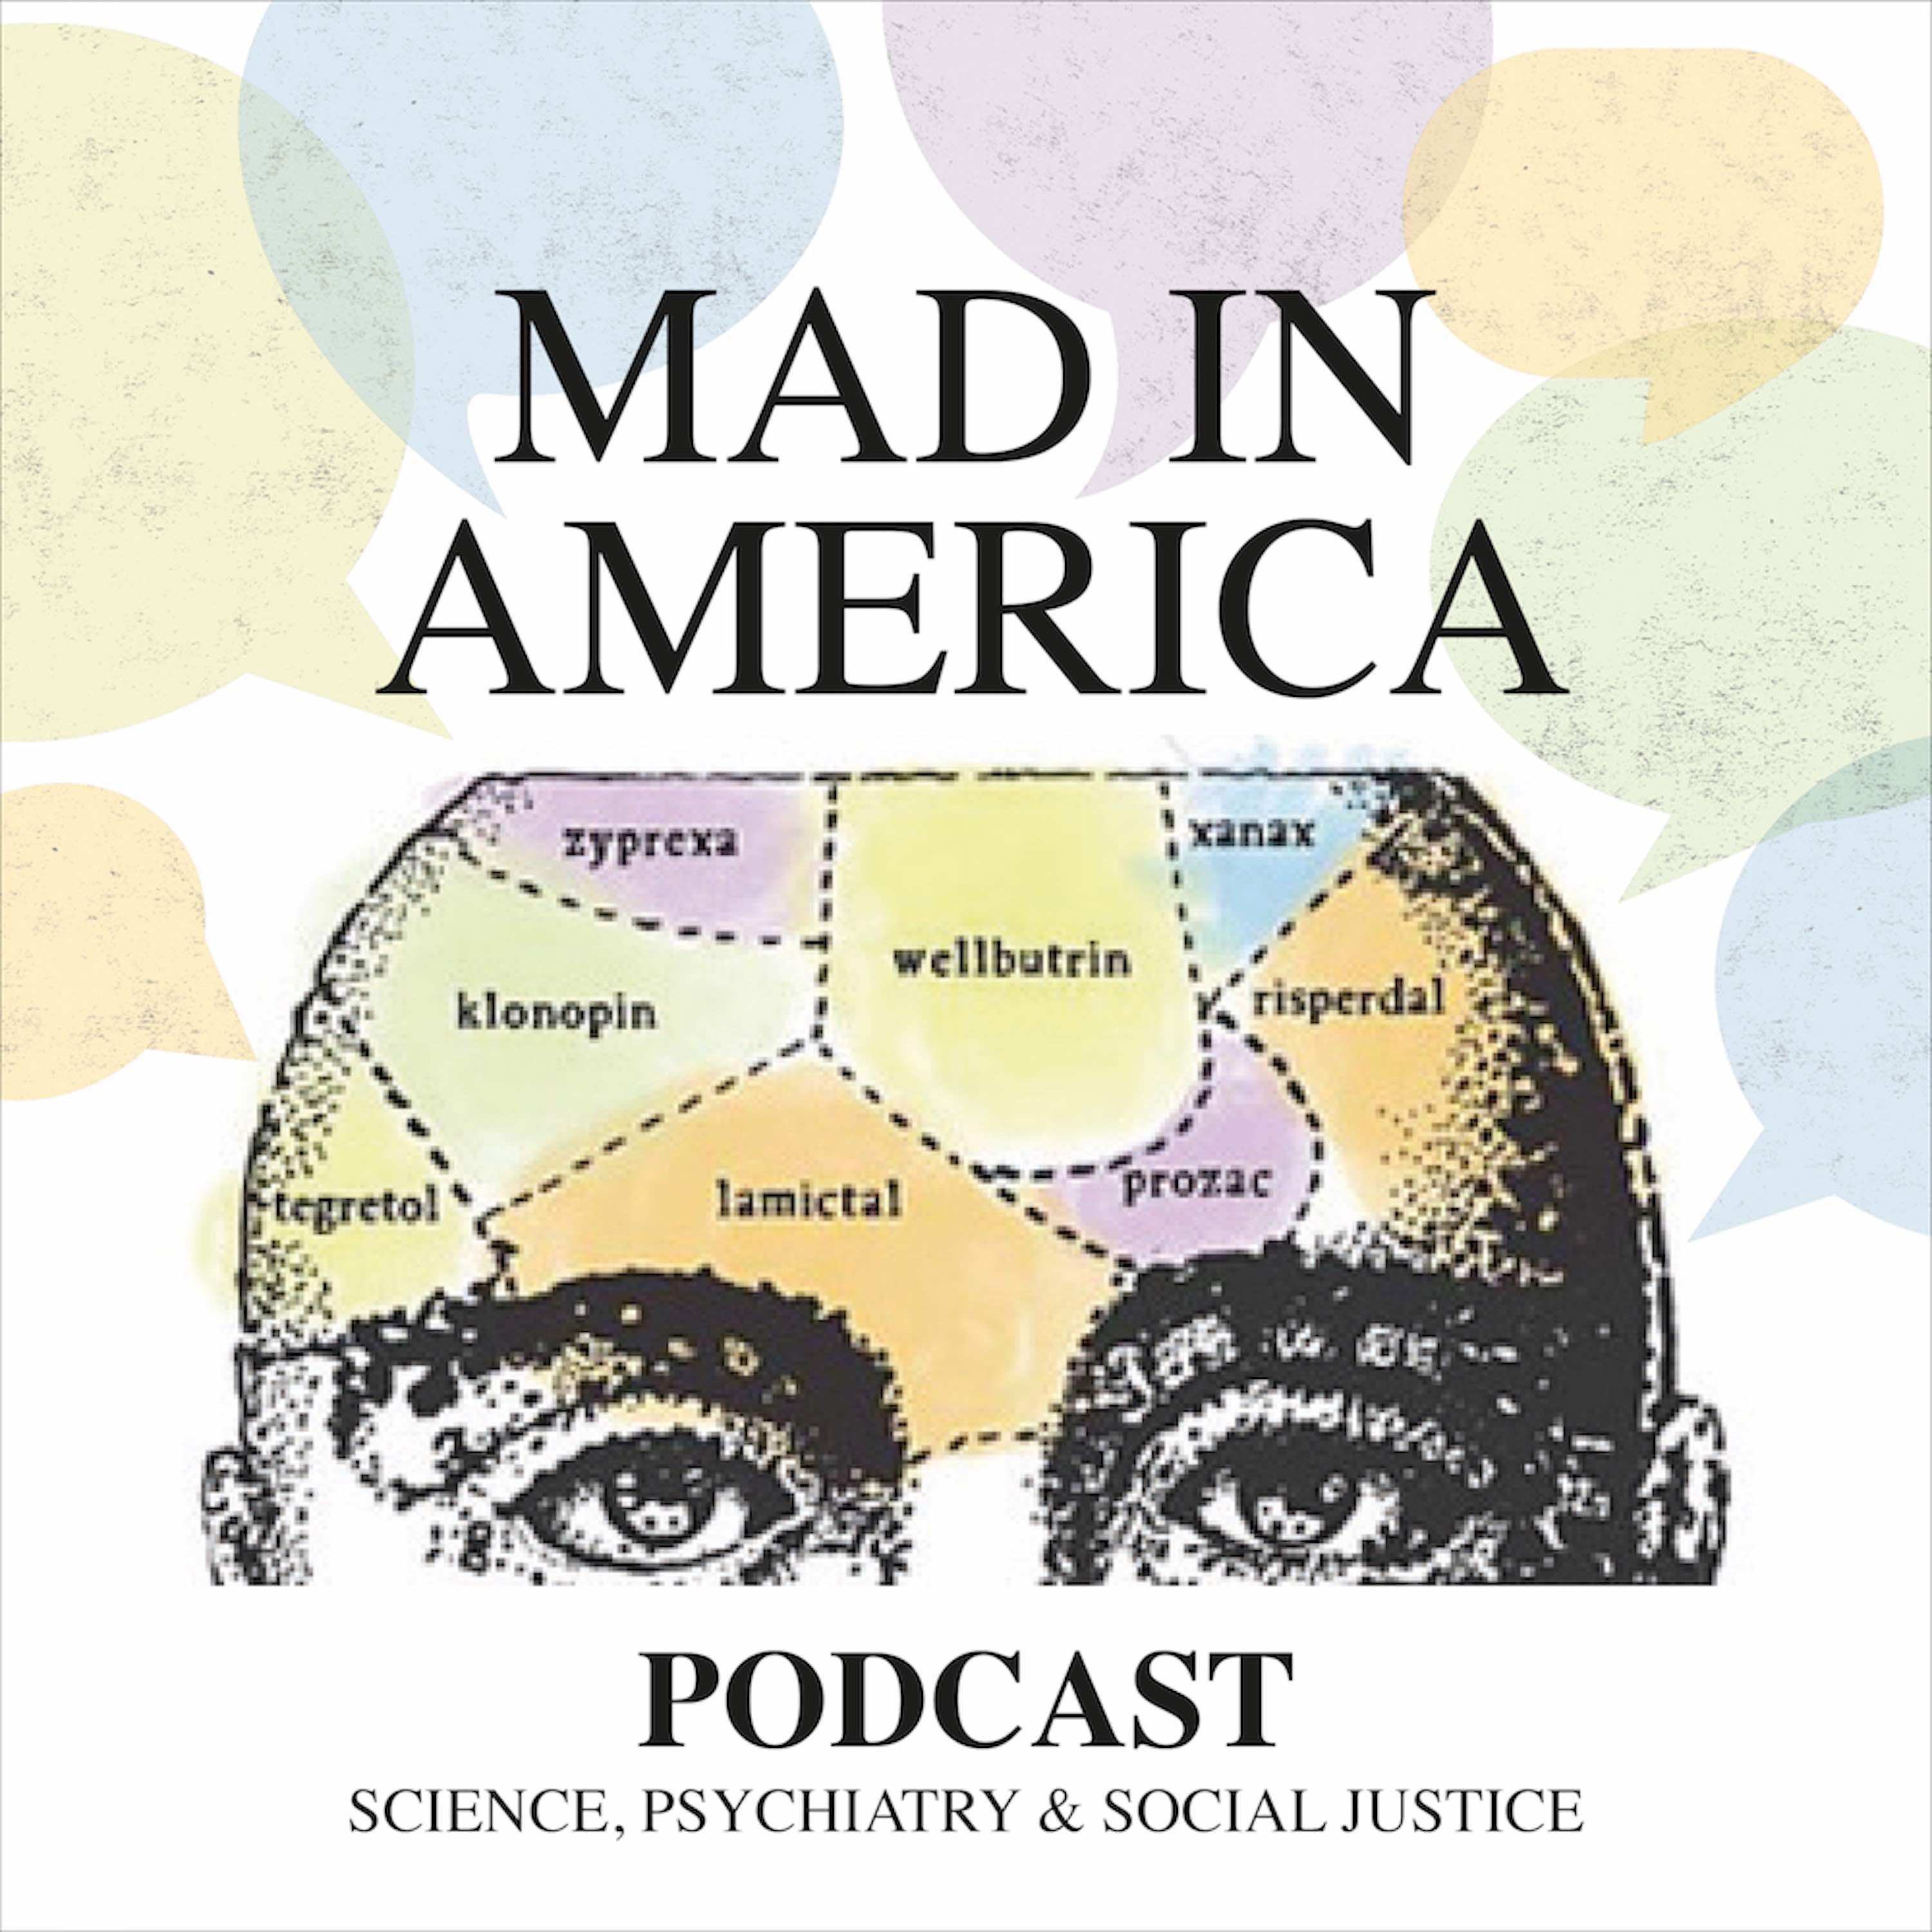 Mad in America: Rethinking Mental Health - Sami Timimi and John Read - Latest Developments with The UK Royal College of Psychiatrists